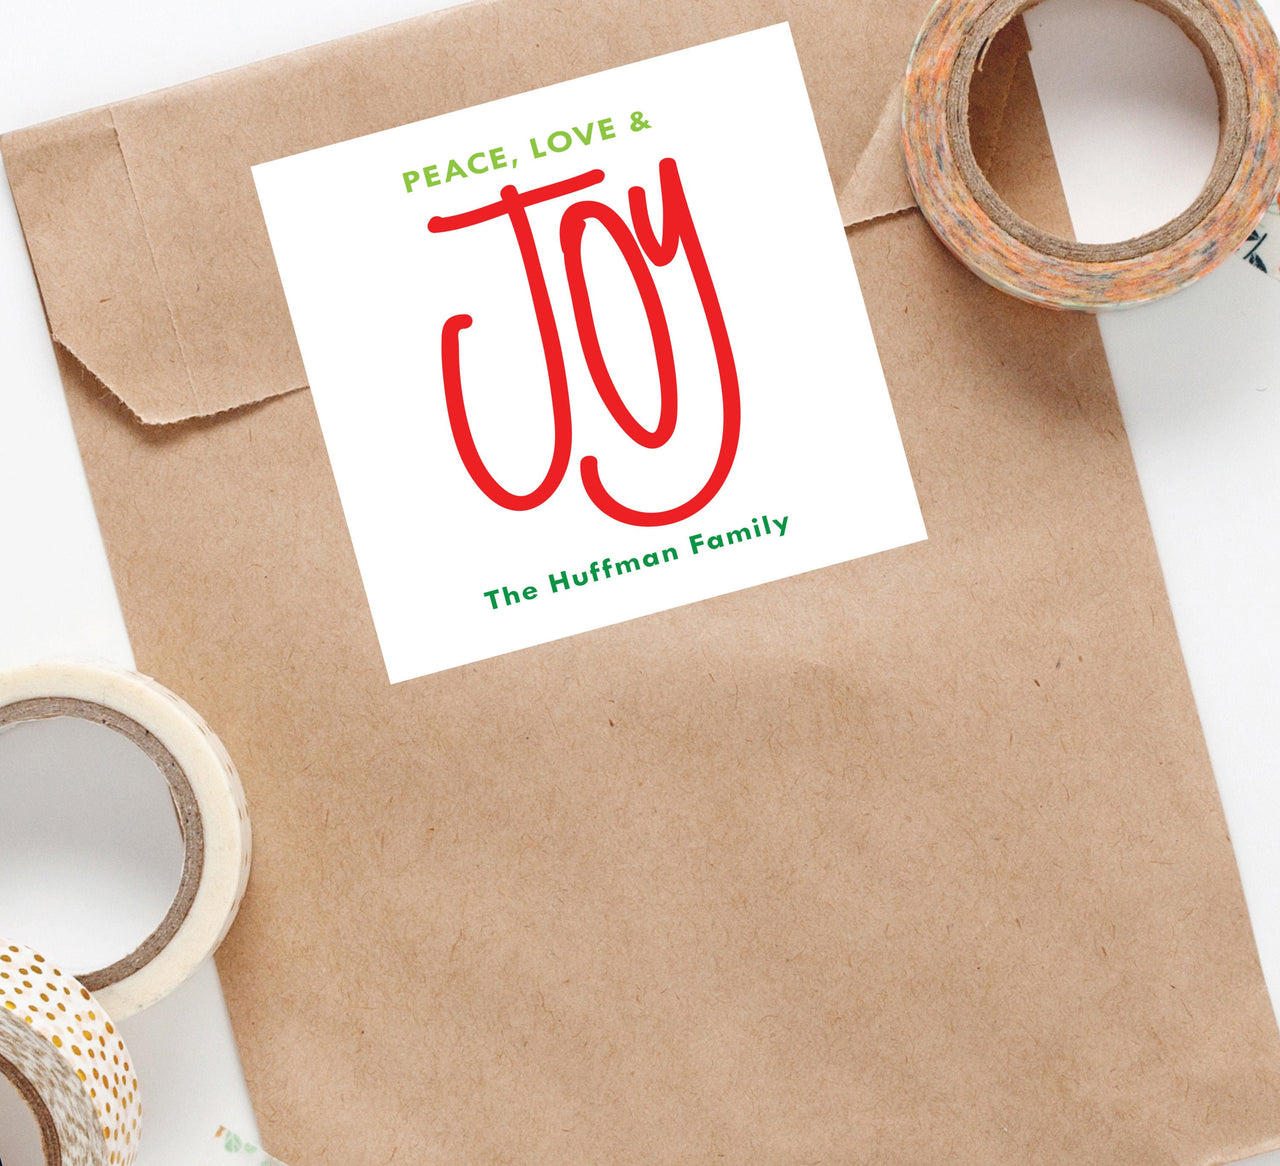 Holiday Joy Sticker,Custom Holiday Sticker,Personalized Christmas Sticker,Peace Love Joy Sticker,Gift Tag,Holiday Packaging,Christmas 012HS - Joy Creative Shop